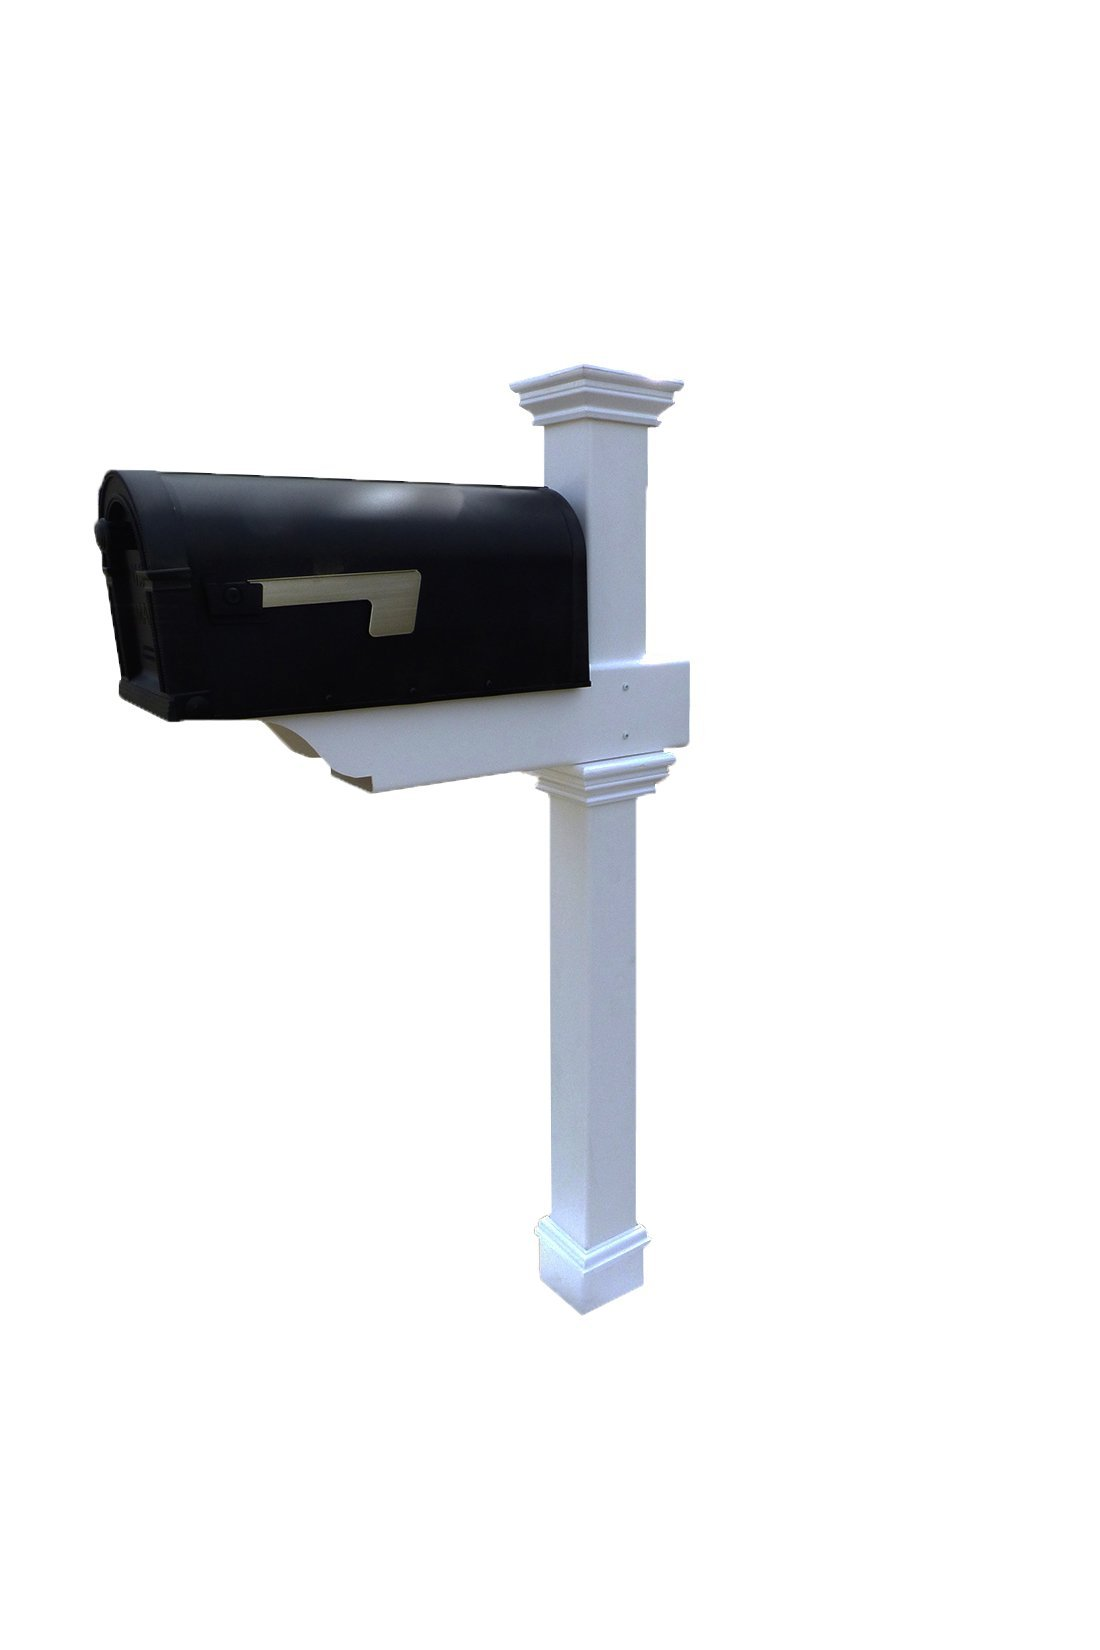 Zippity Outdoor Products Classica Mailbox Post with No-Dig Steel Pipe Anchor Kit, White by Zippity Outdoor Products